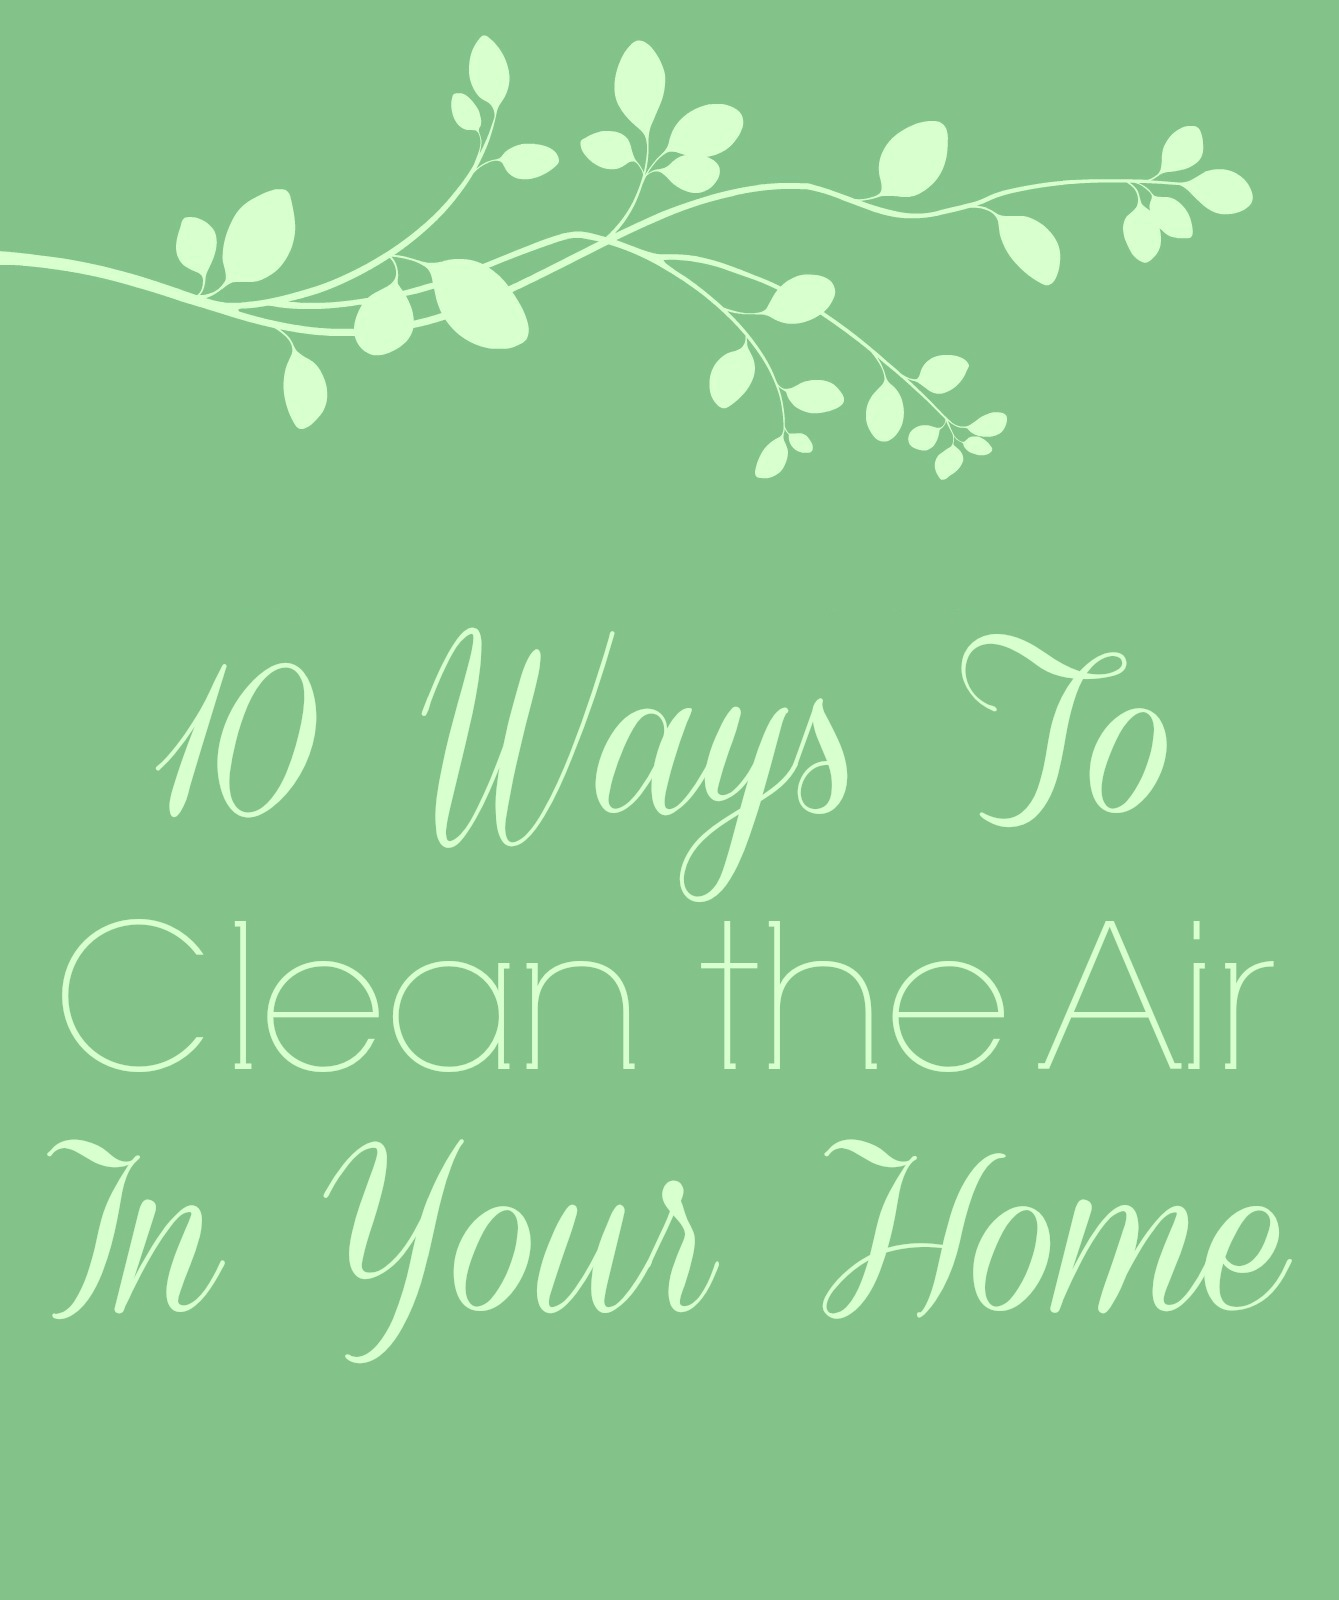 10 Ways to Clean the Air in Your Home